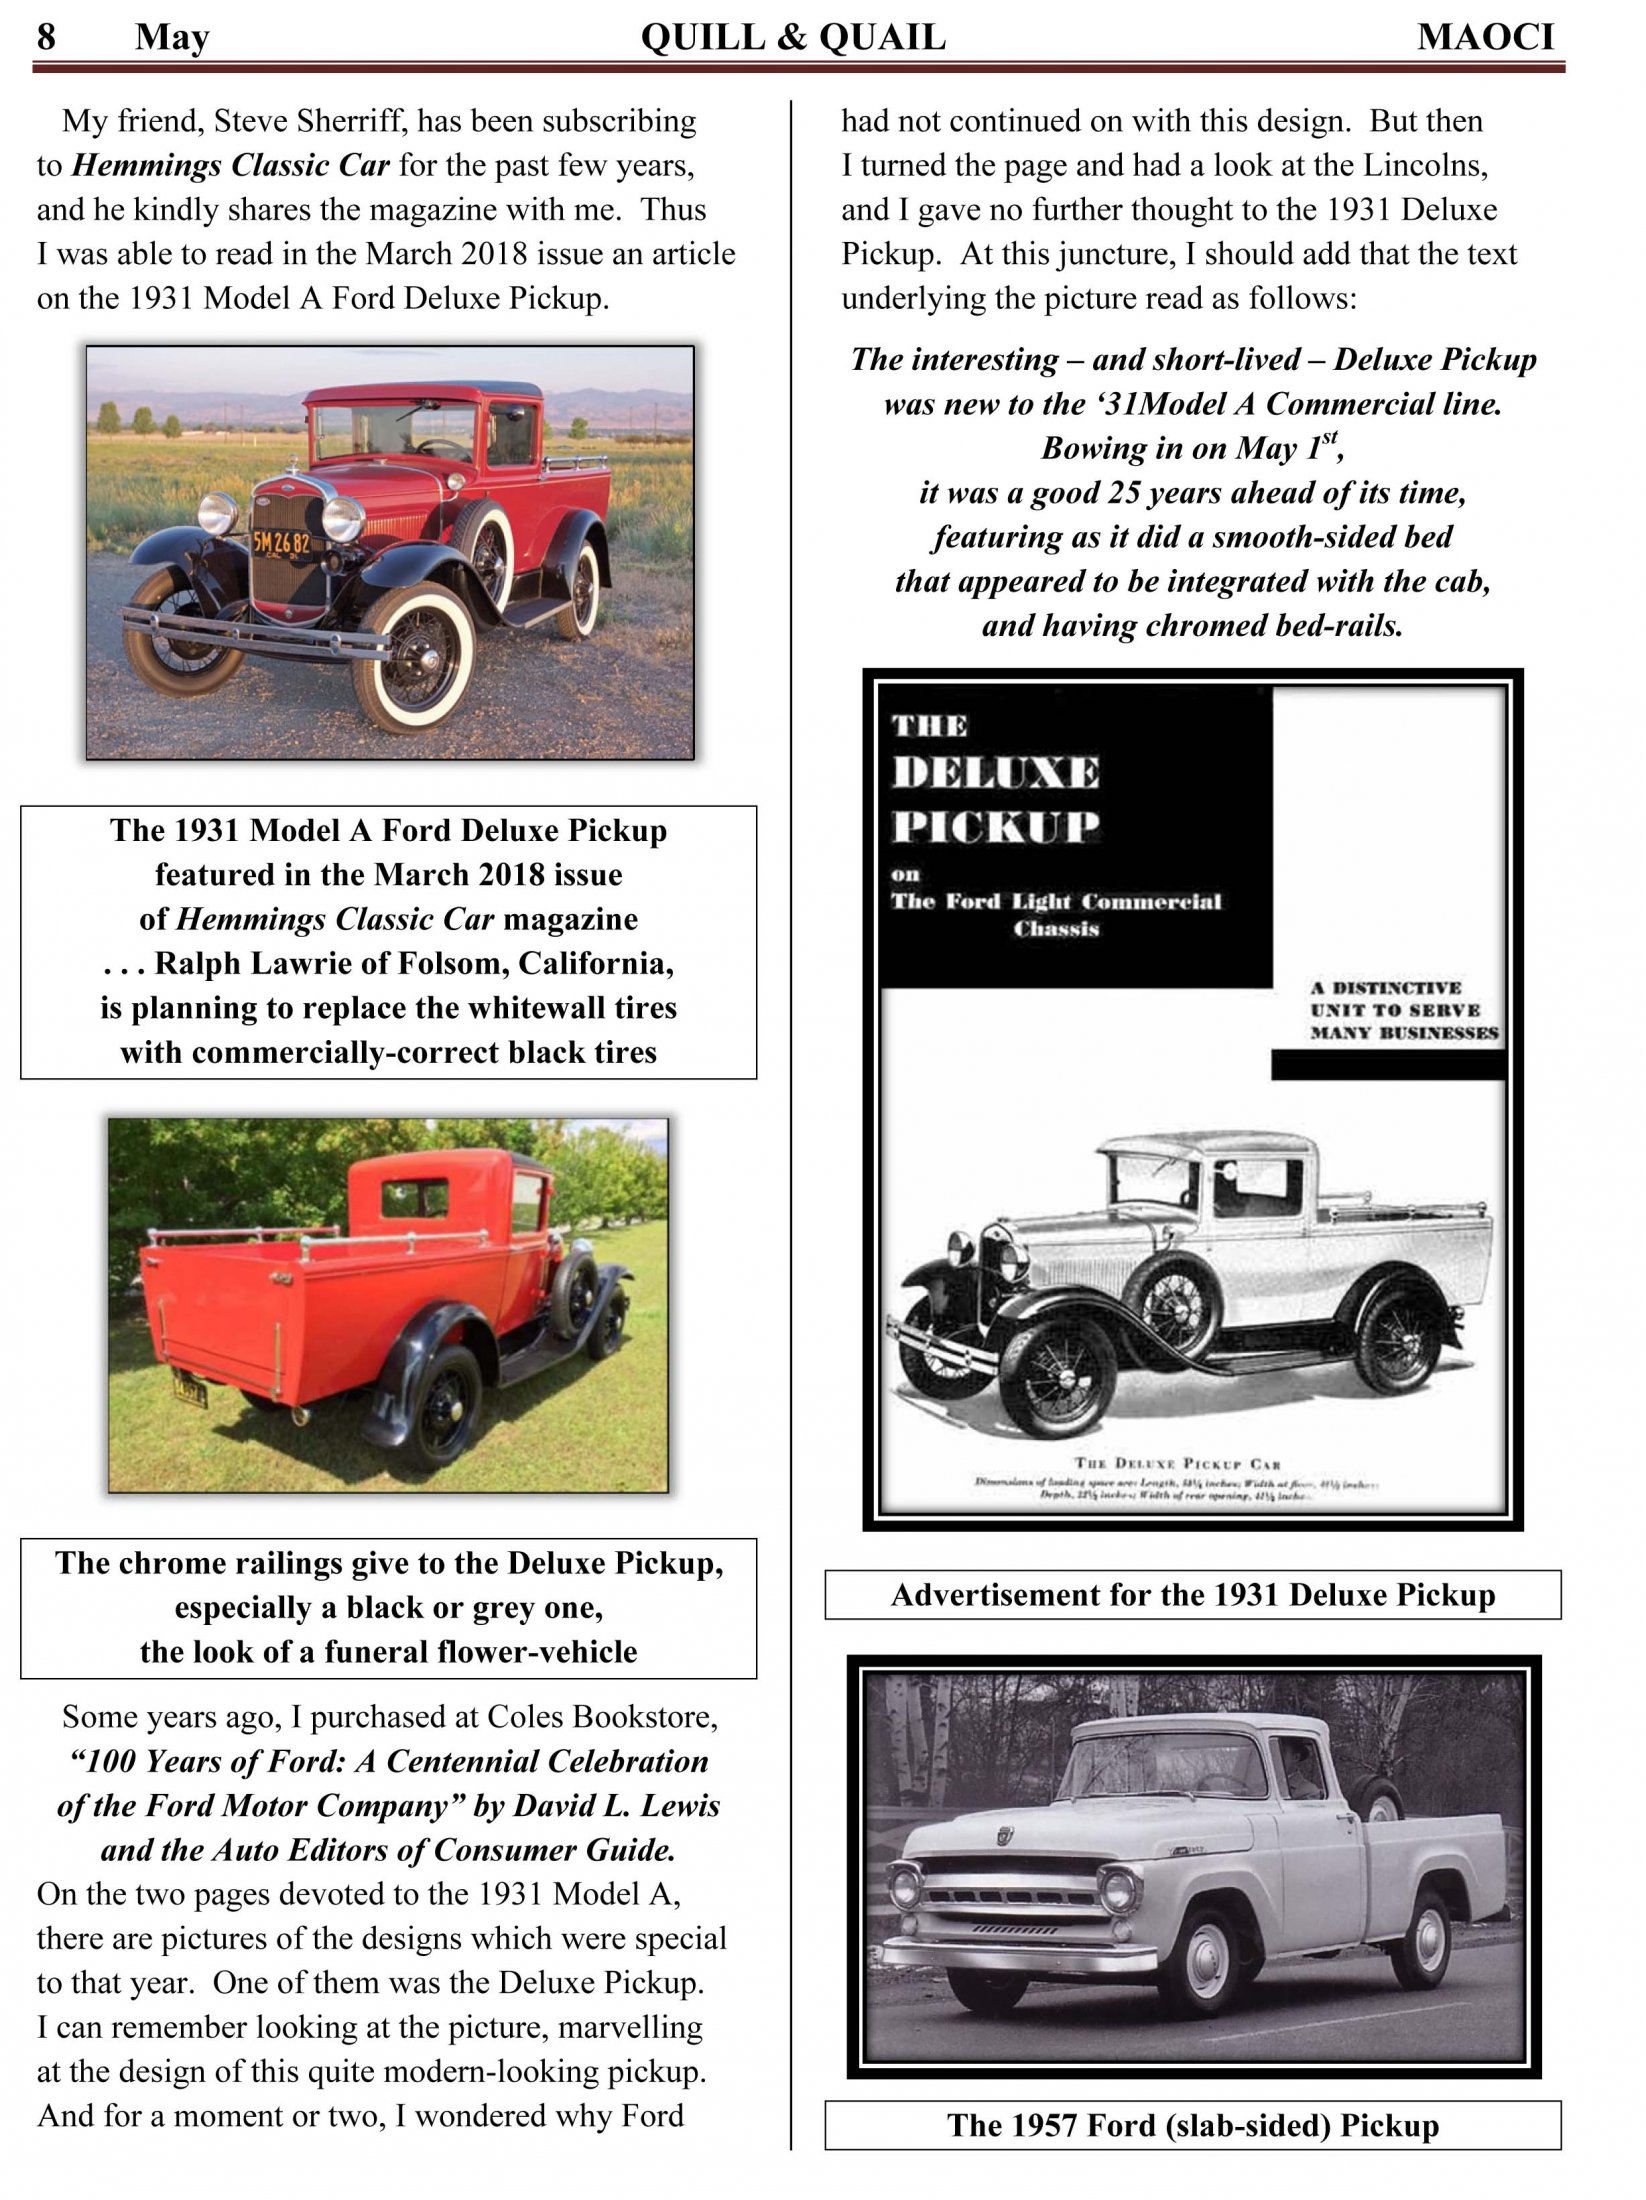 The History Of Ford And The 20 Million Model A In 2018 May Q&Q-6